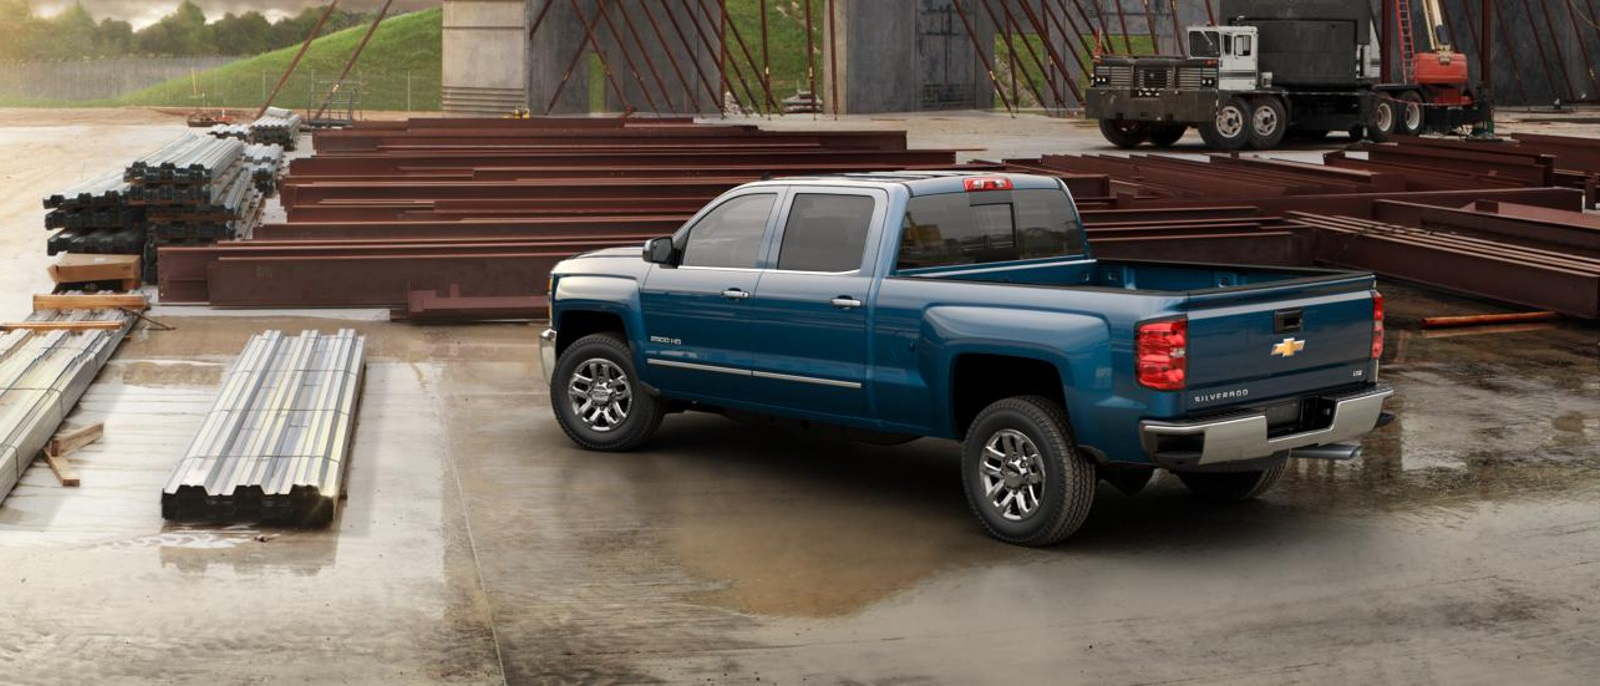 2016 Chevy Silverado 2500HD Rear